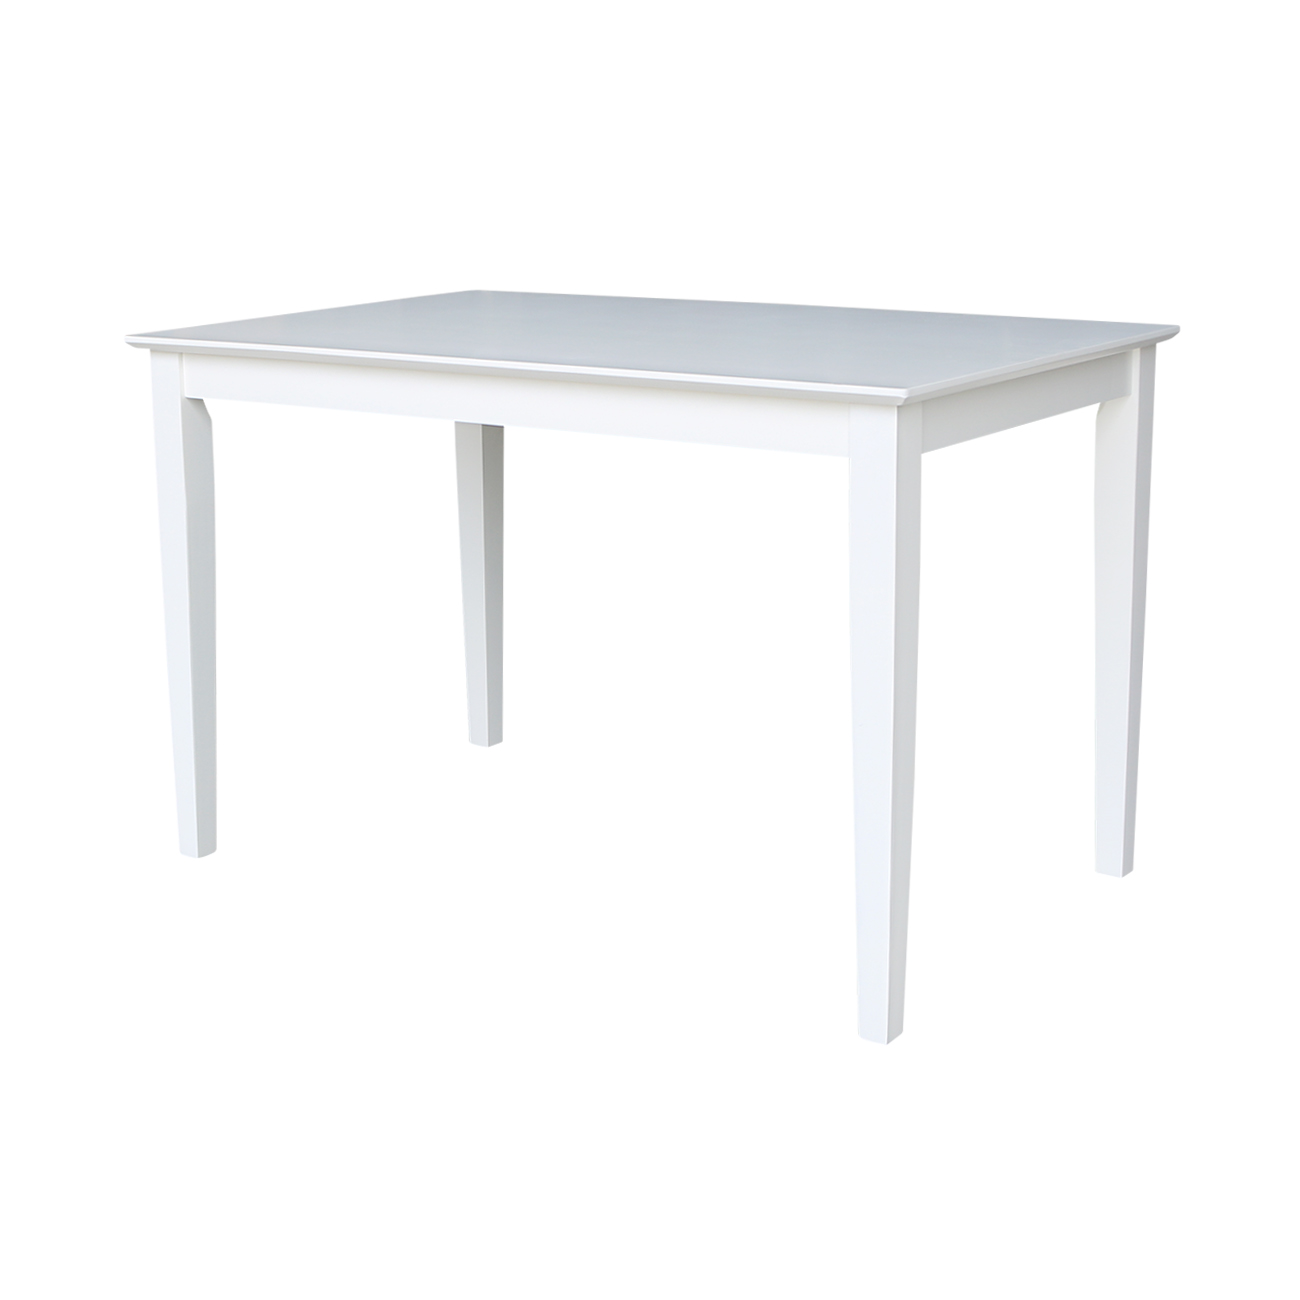 Solid Wood 30 X 48 Inch Dining Table In White Walmartcom